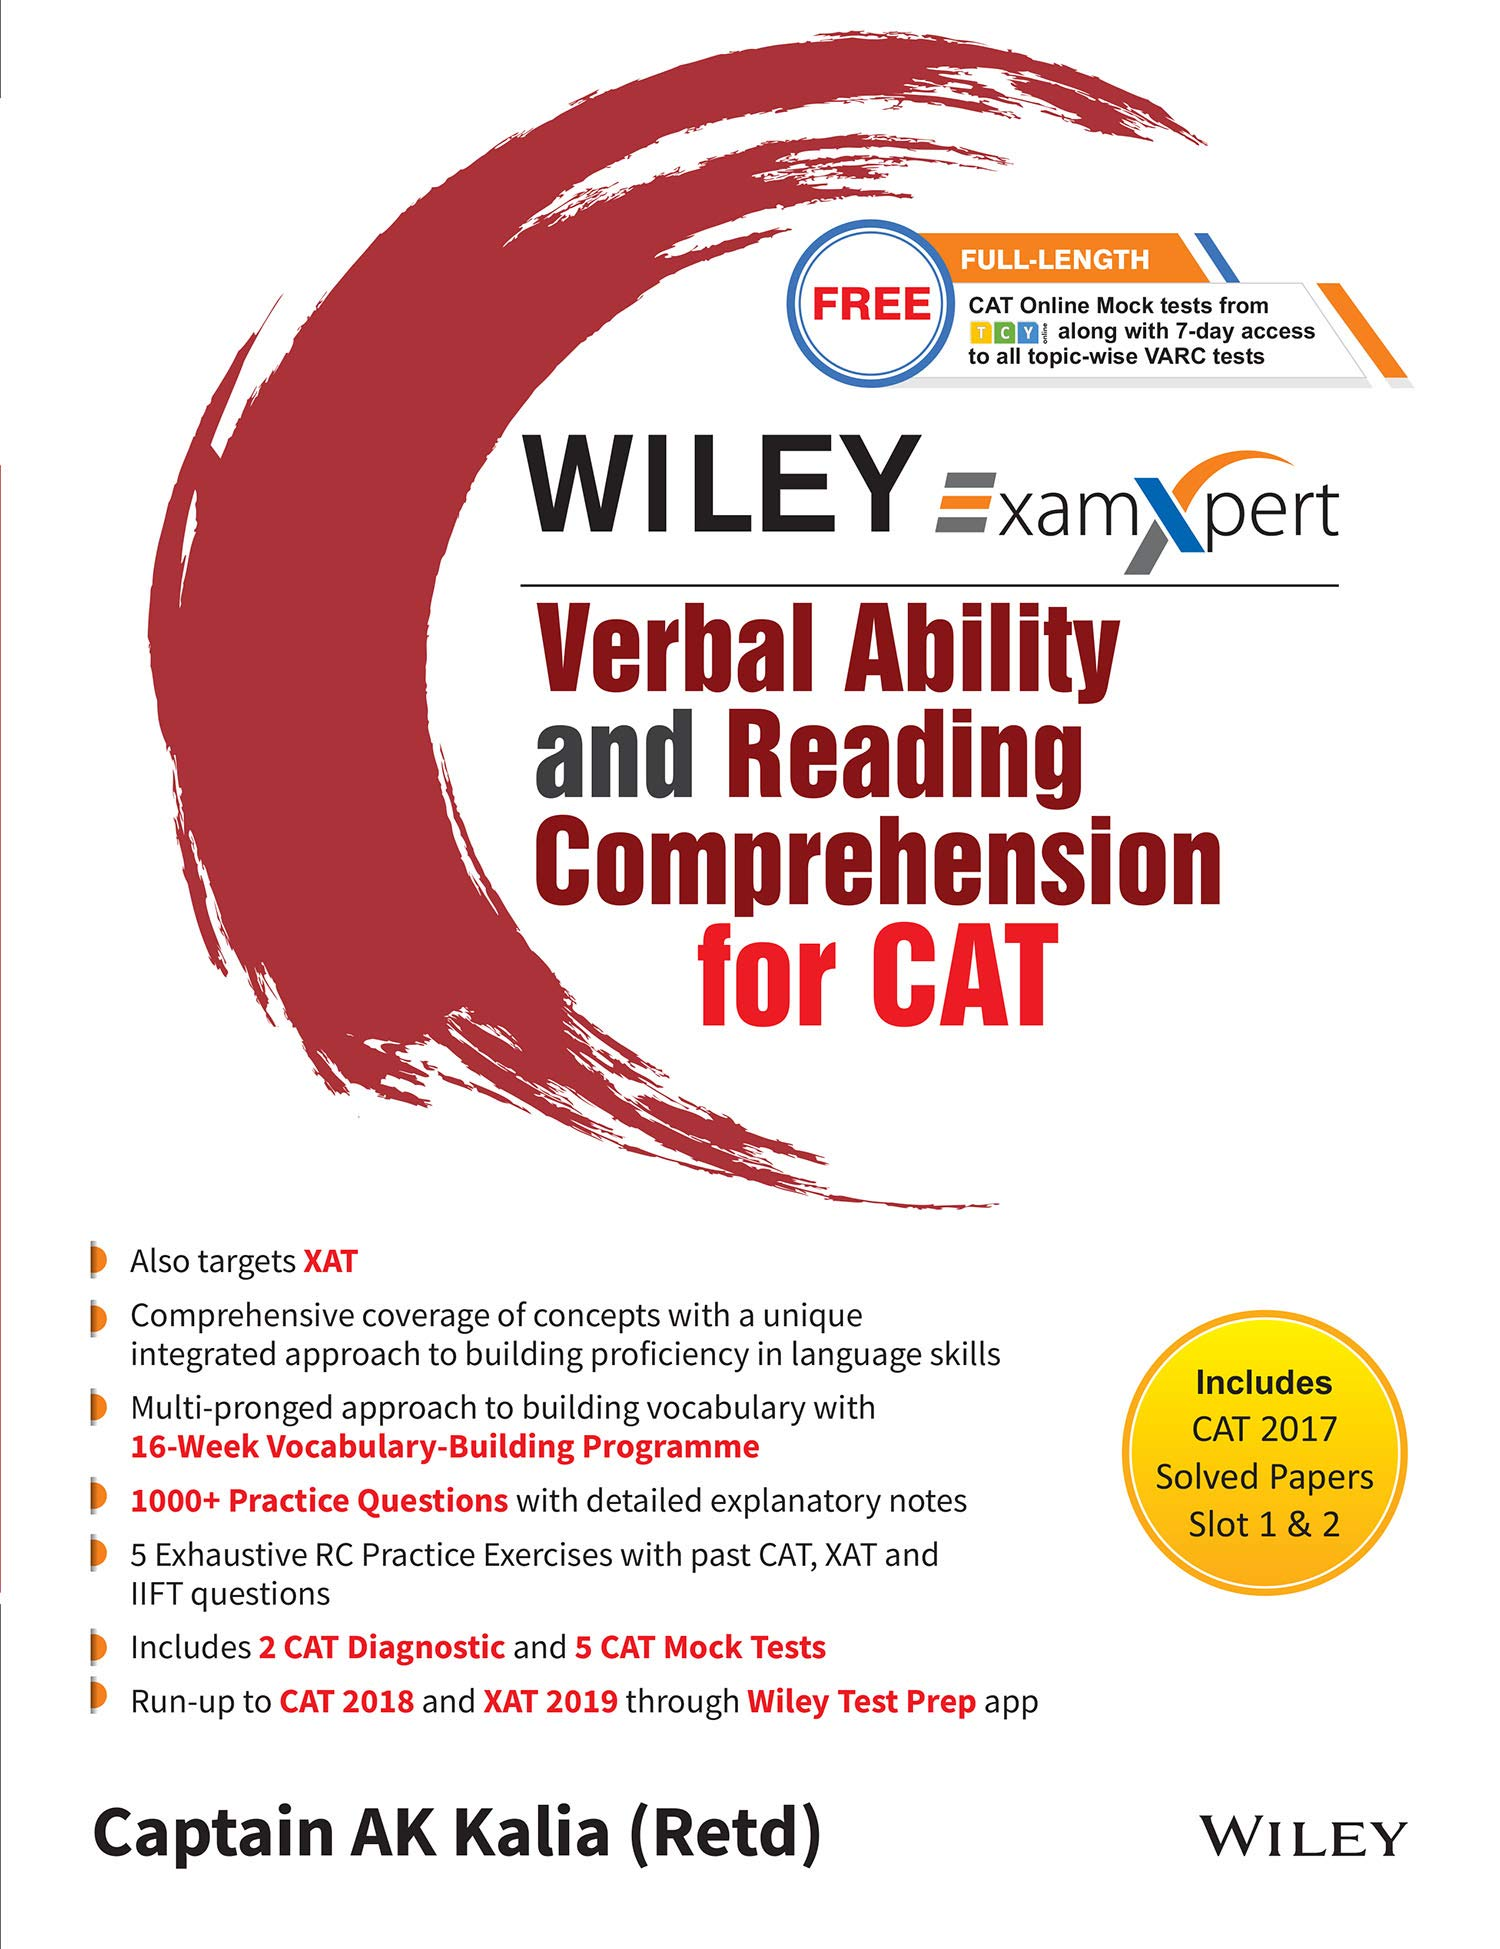 Buy Wiley's Exam Xpert Verbal Ability and Reading Comprehension for CAT  Book Online at Low Prices in India | Wiley's Exam Xpert Verbal Ability and  Reading ...